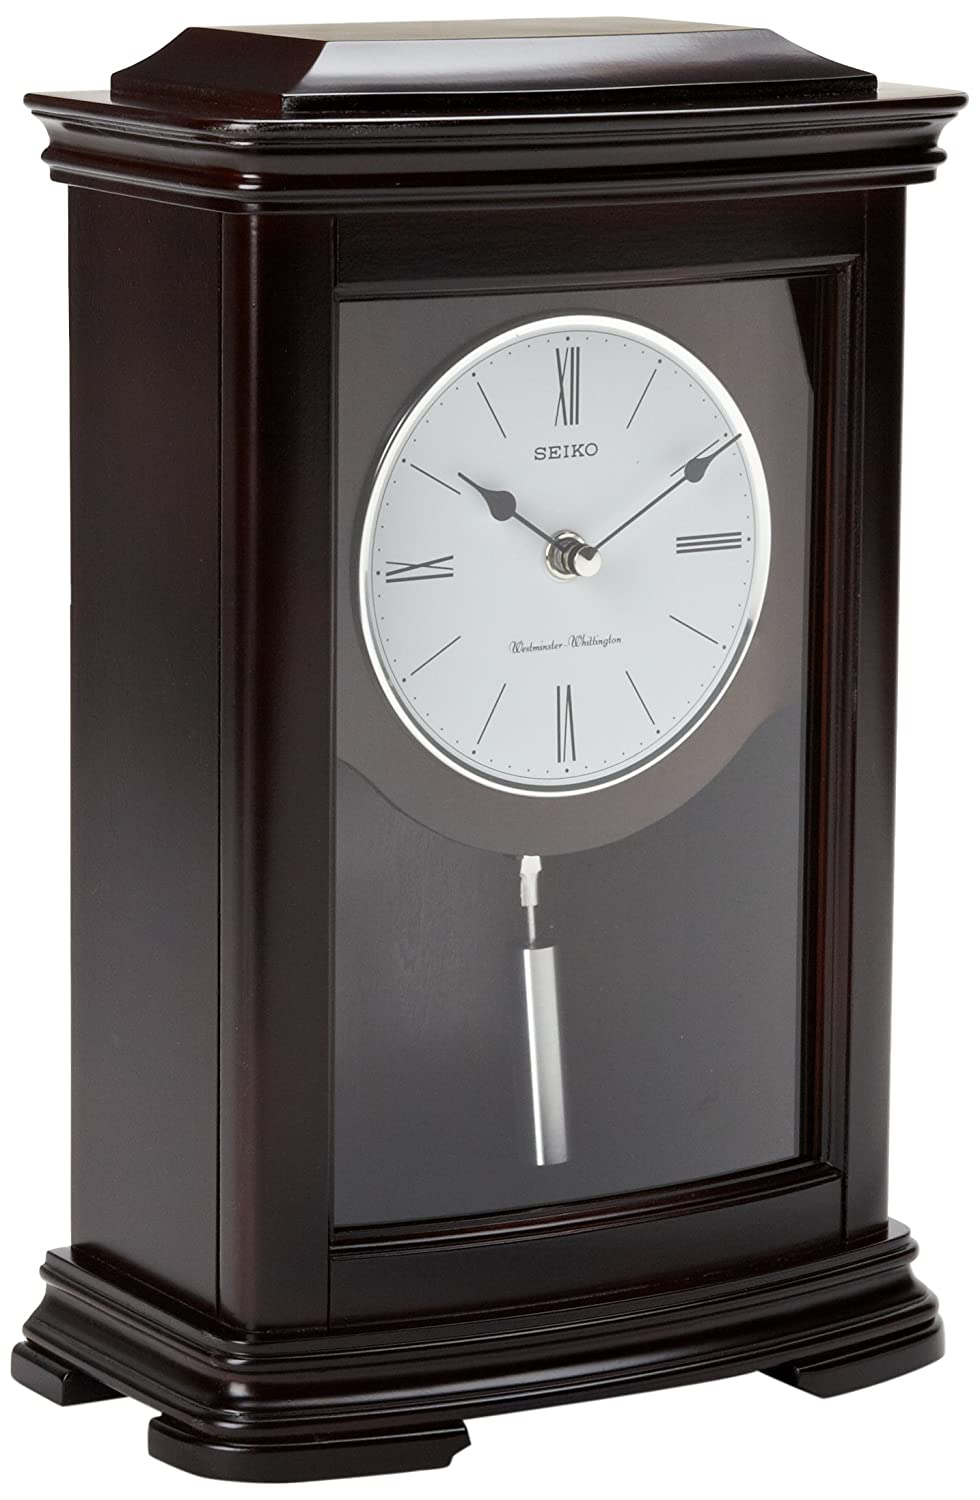 Decorative Mantel Clock And Table Top Clocks Add Style And